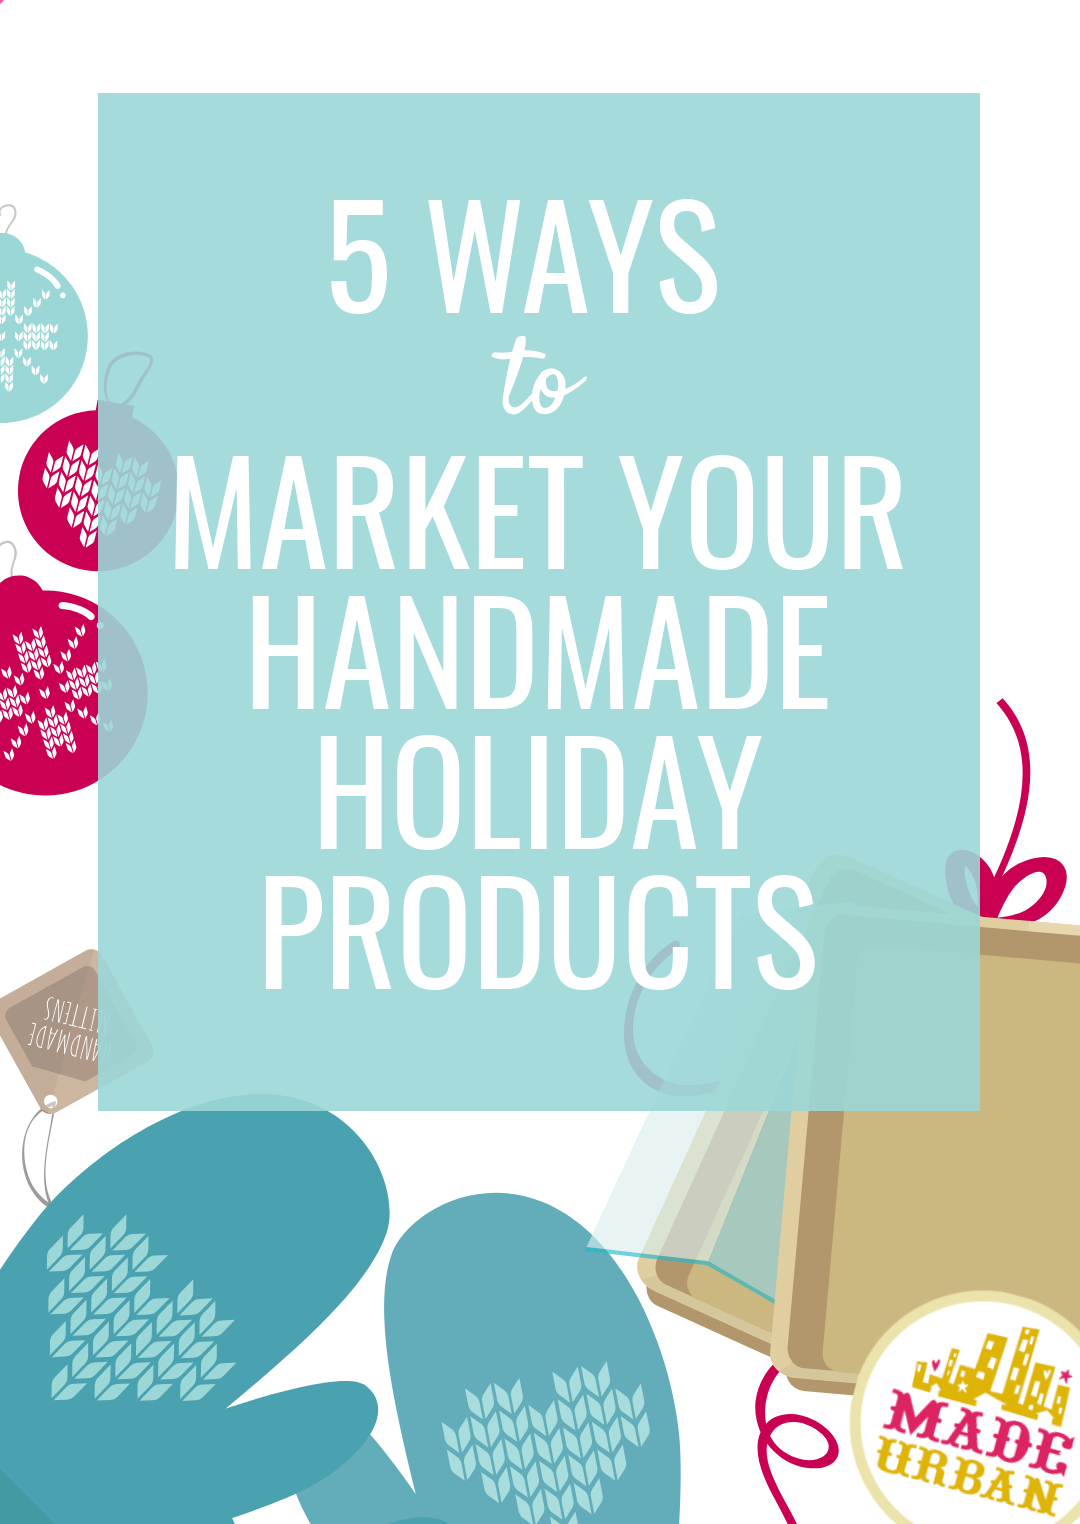 5 Ways to Market your Handmade Holiday Products